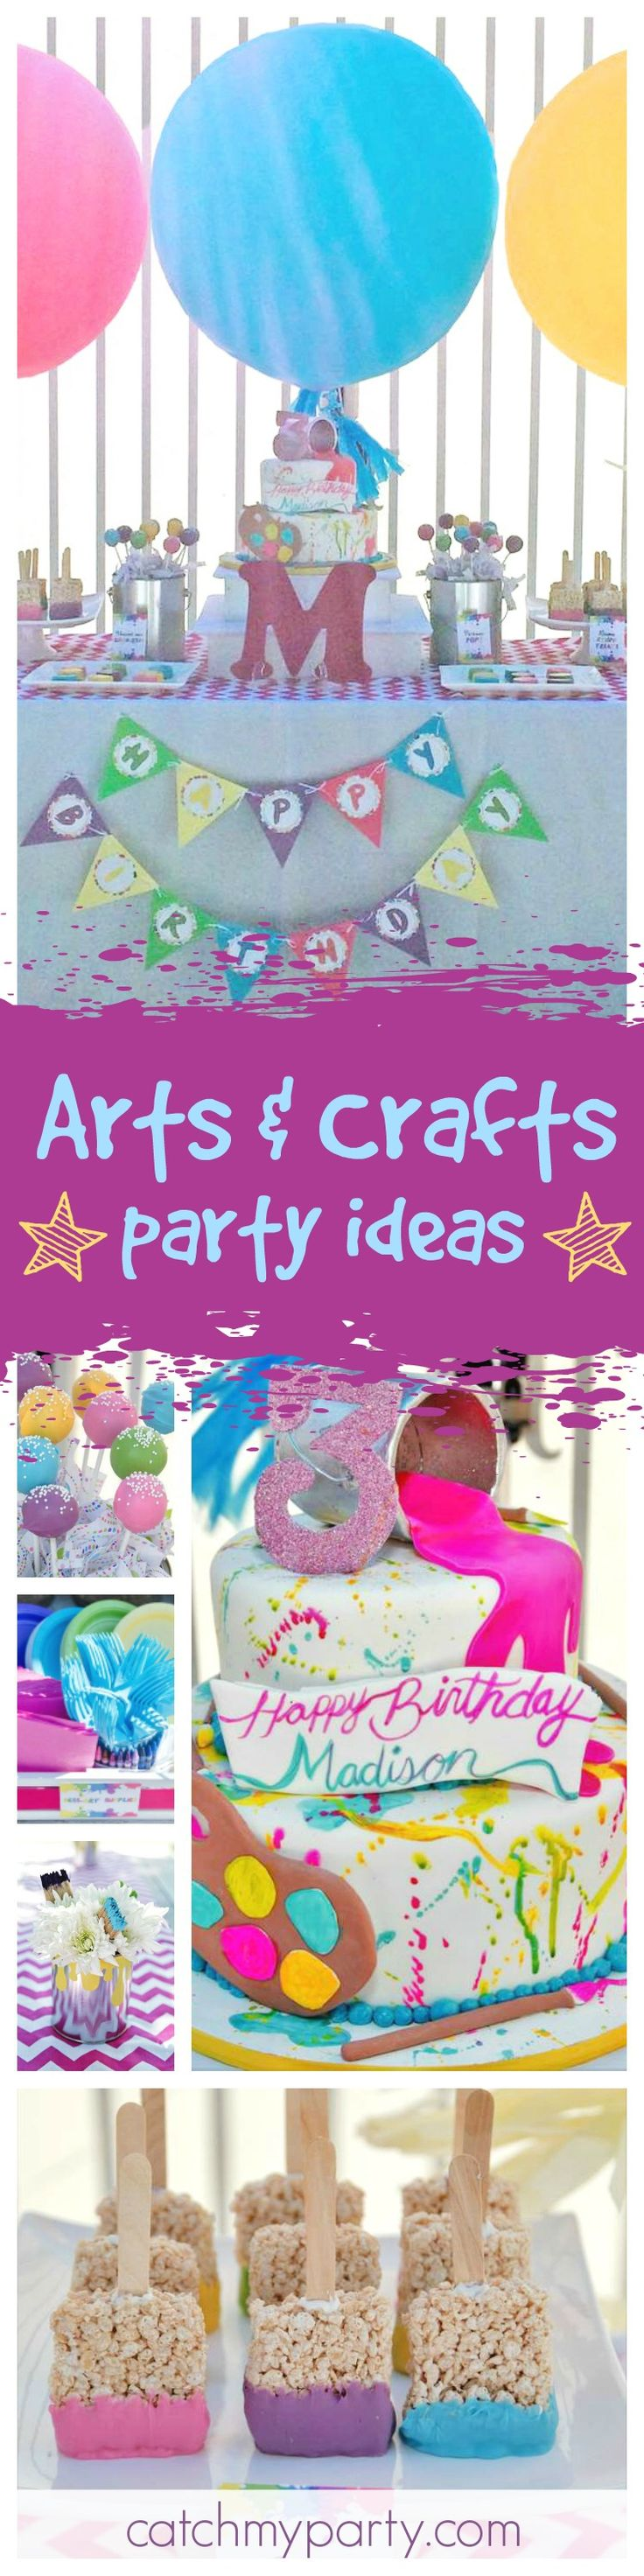 Arts and crafts party ideas - Arts Crafts Birthday Madison S 3rd Birthday Arty Party